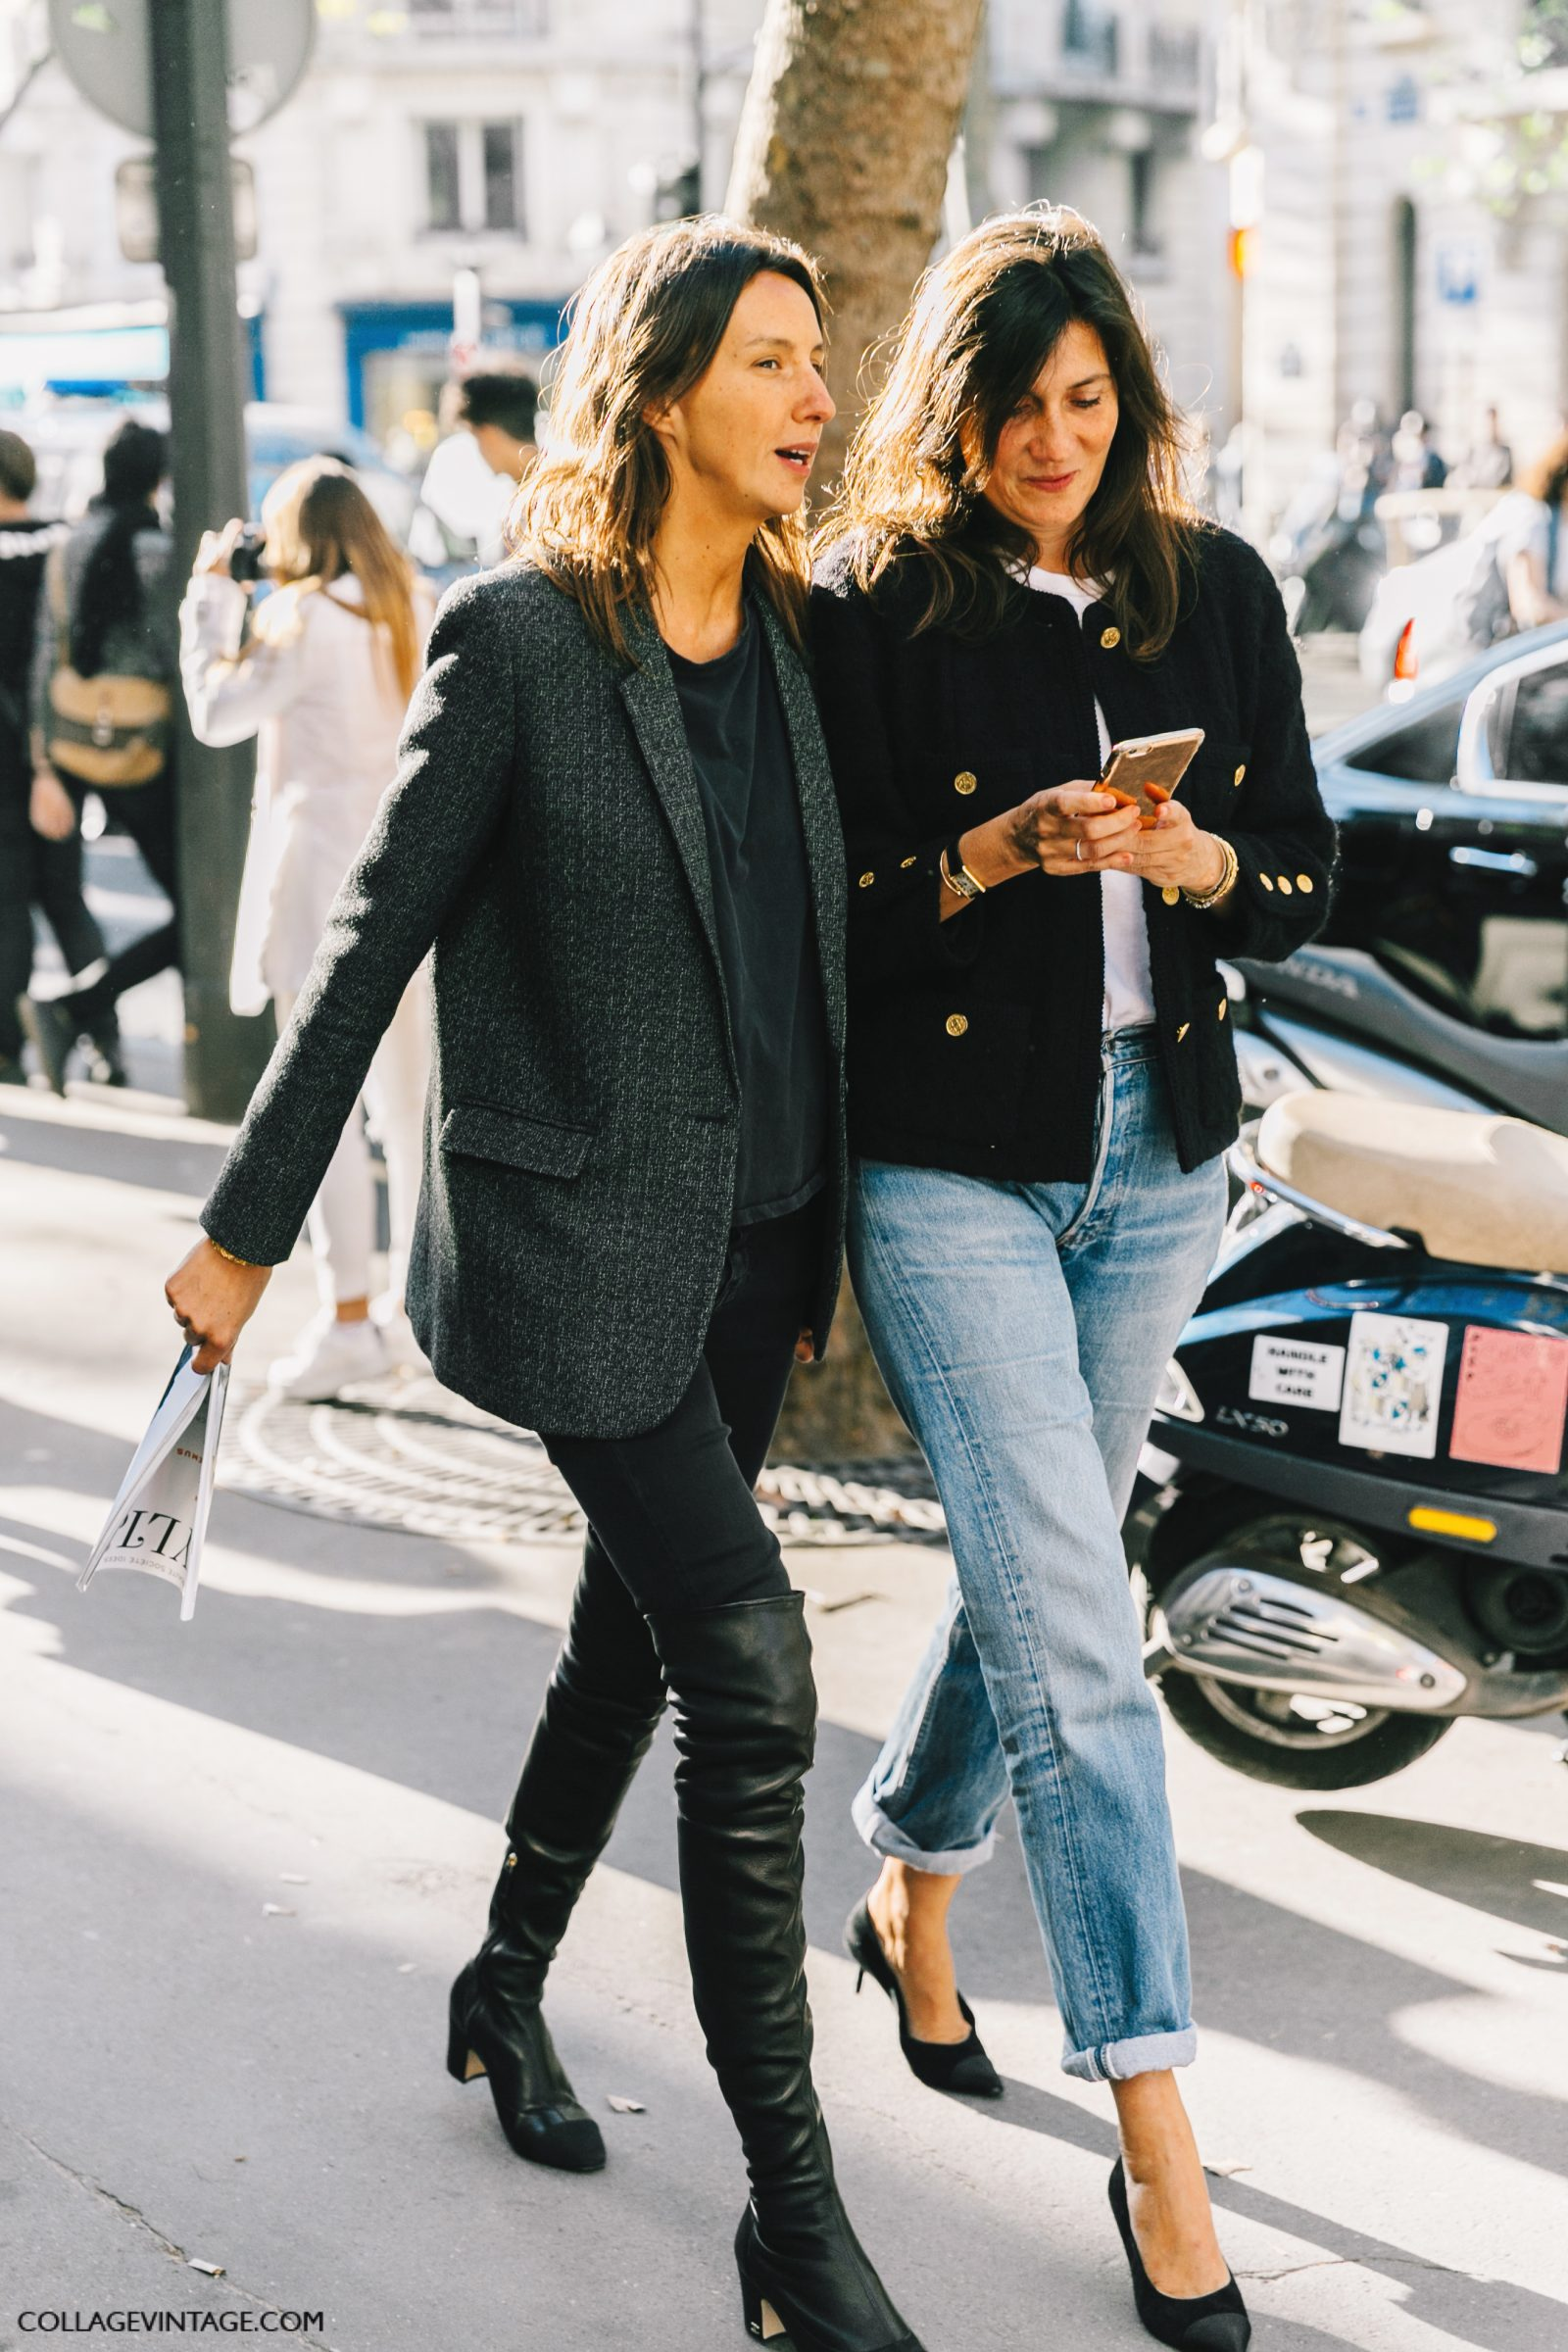 pfw-paris_fashion_week_ss17-street_style-outfits-collage_vintage-olympia_letan-hermes-stella_mccartney-sacai-220